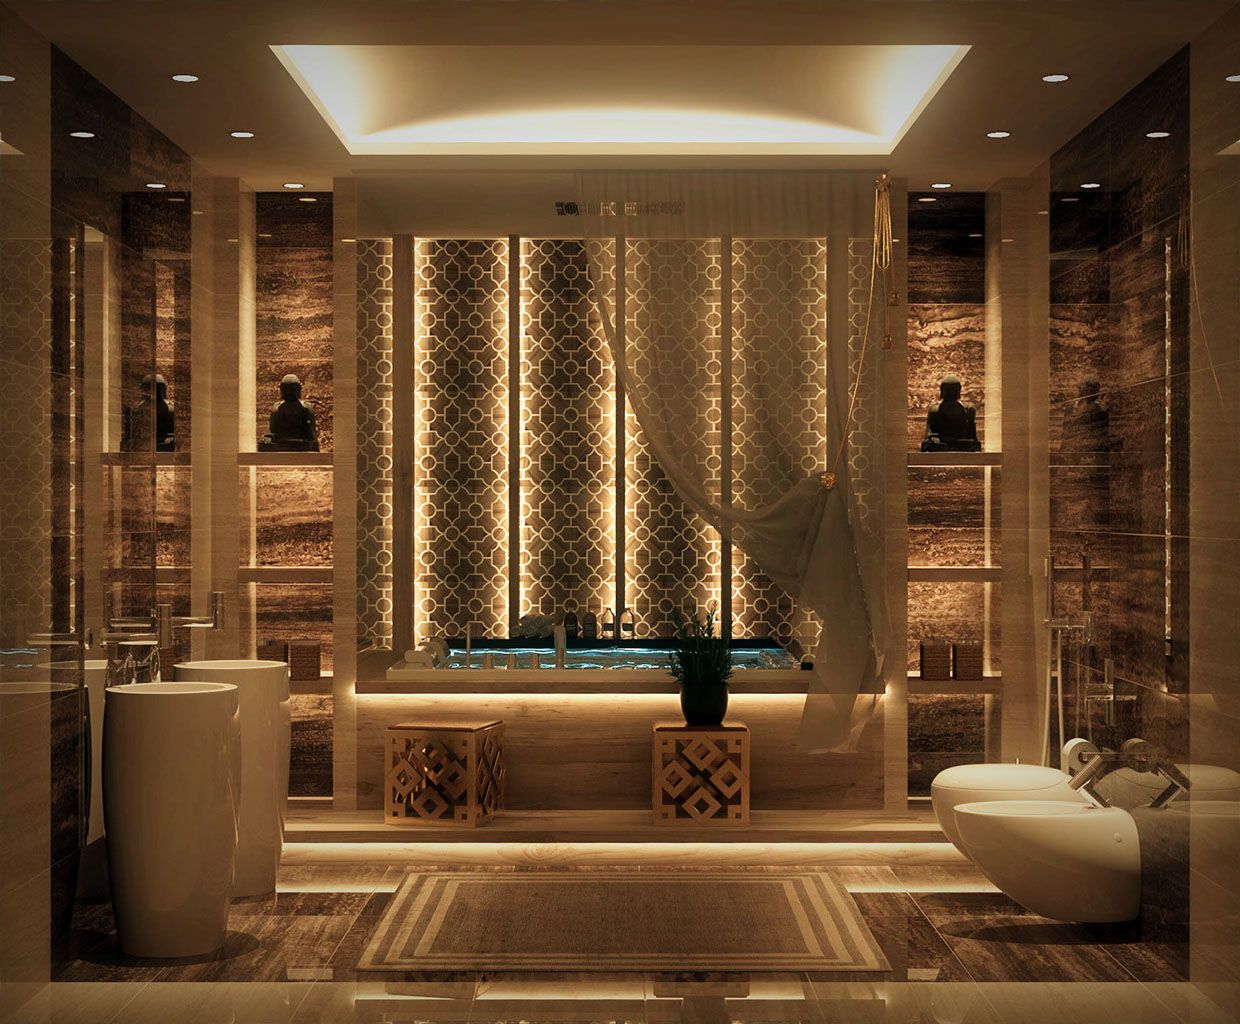 Luxury bathroom curtains - Luxury Bathroom Curtains 8